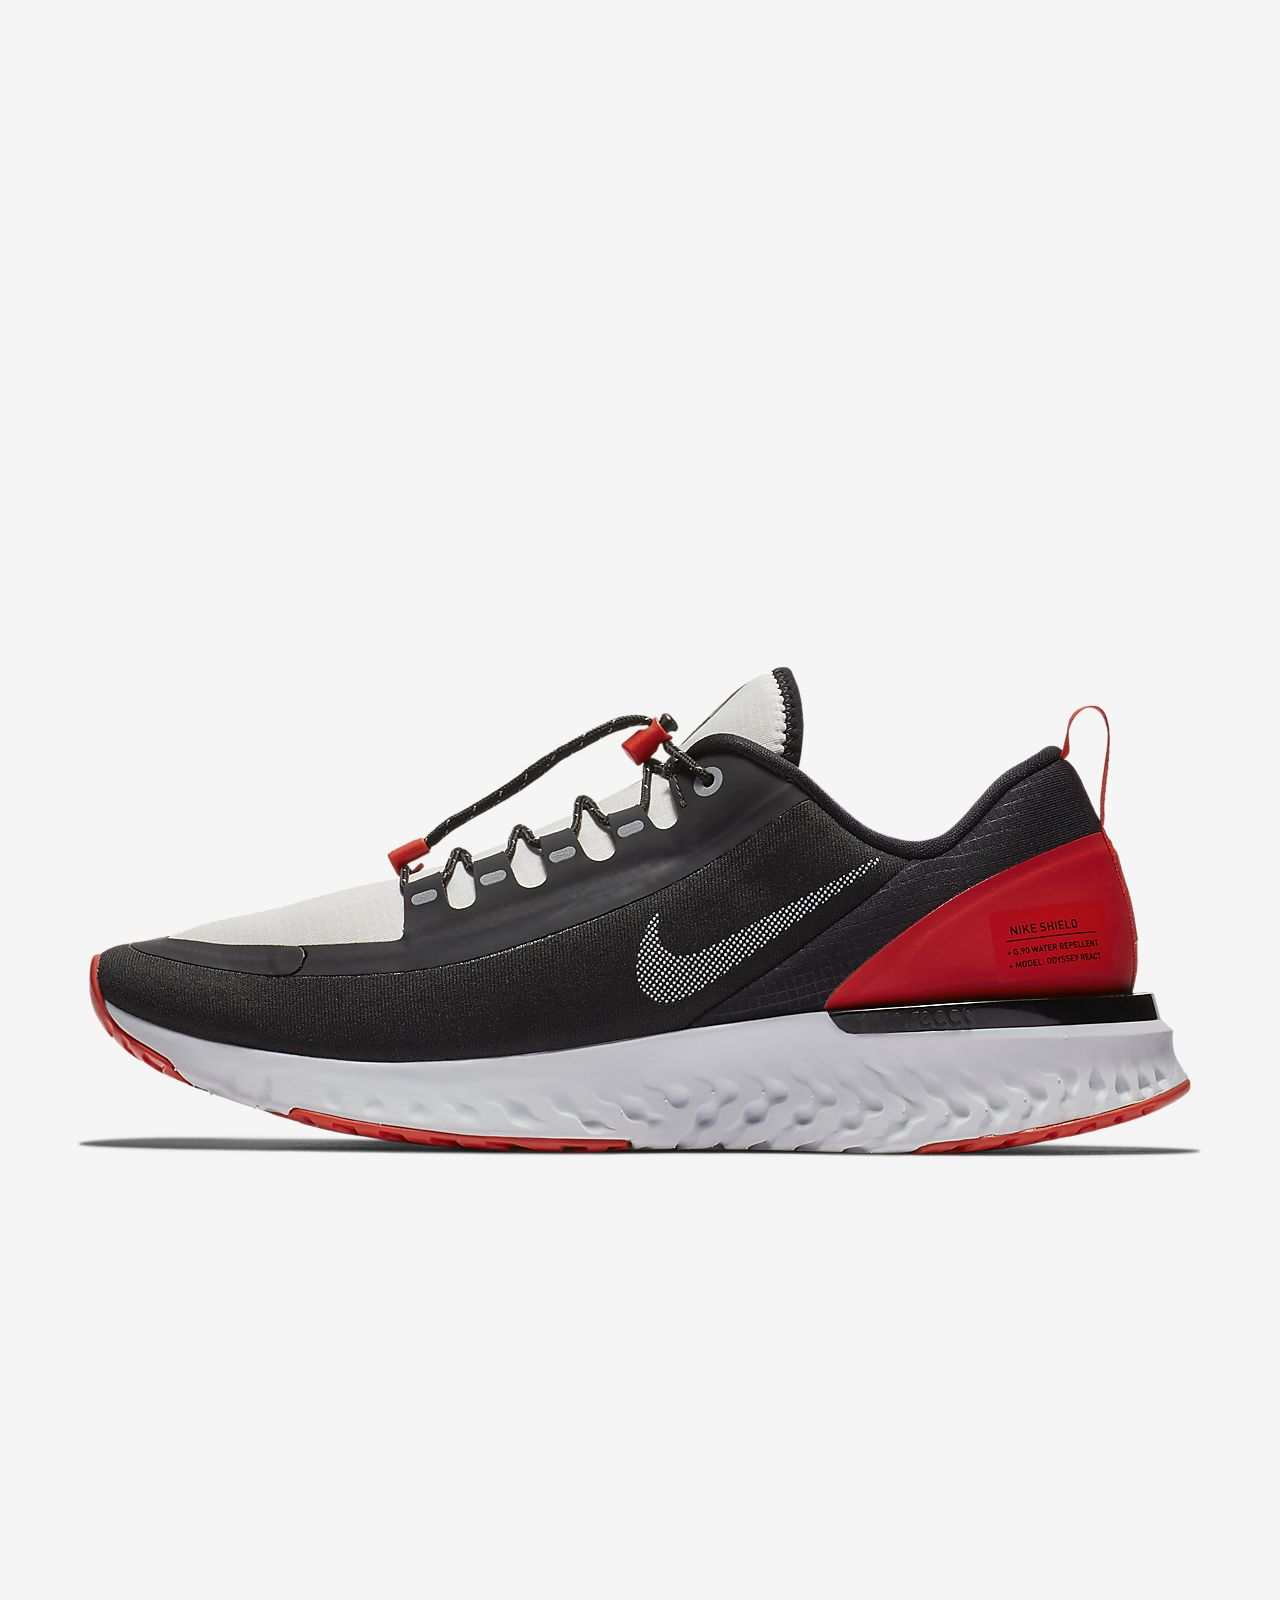 1aeea1c78a24 Nike Odyssey React Shield Water-Repellent Men s Running Shoe. Nike ...